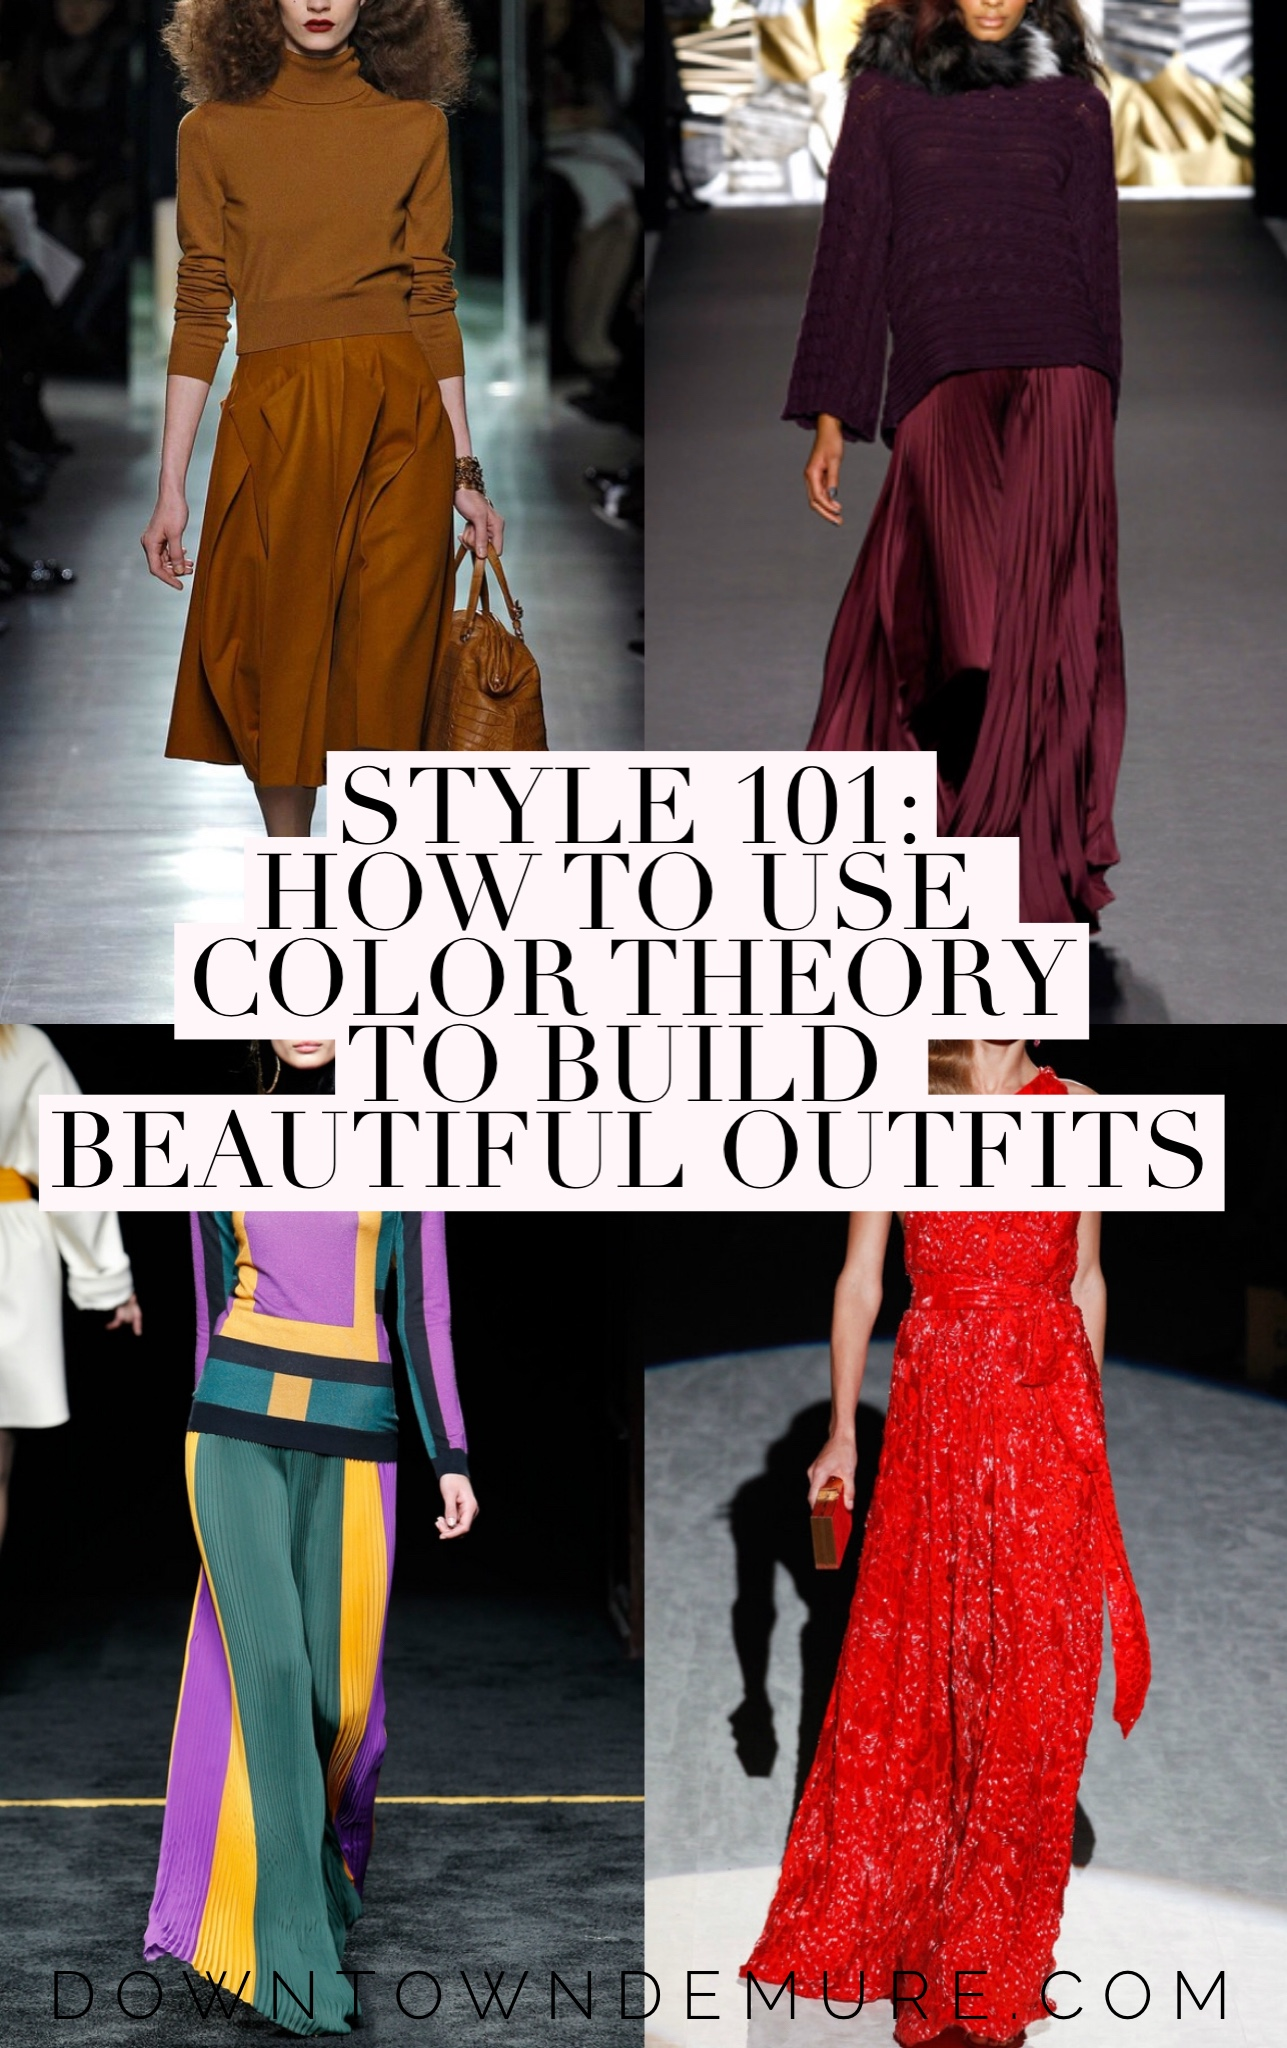 How To Use Color Theory to Build Beautiful Outfits - Downtown Demure